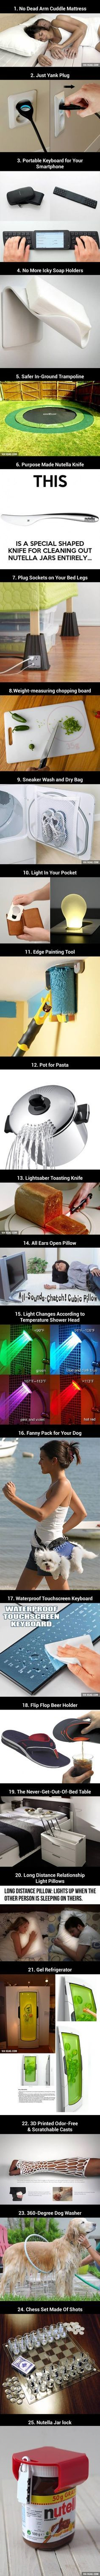 25 Just Really Cool Inventions                                                                                                                                                                                 More